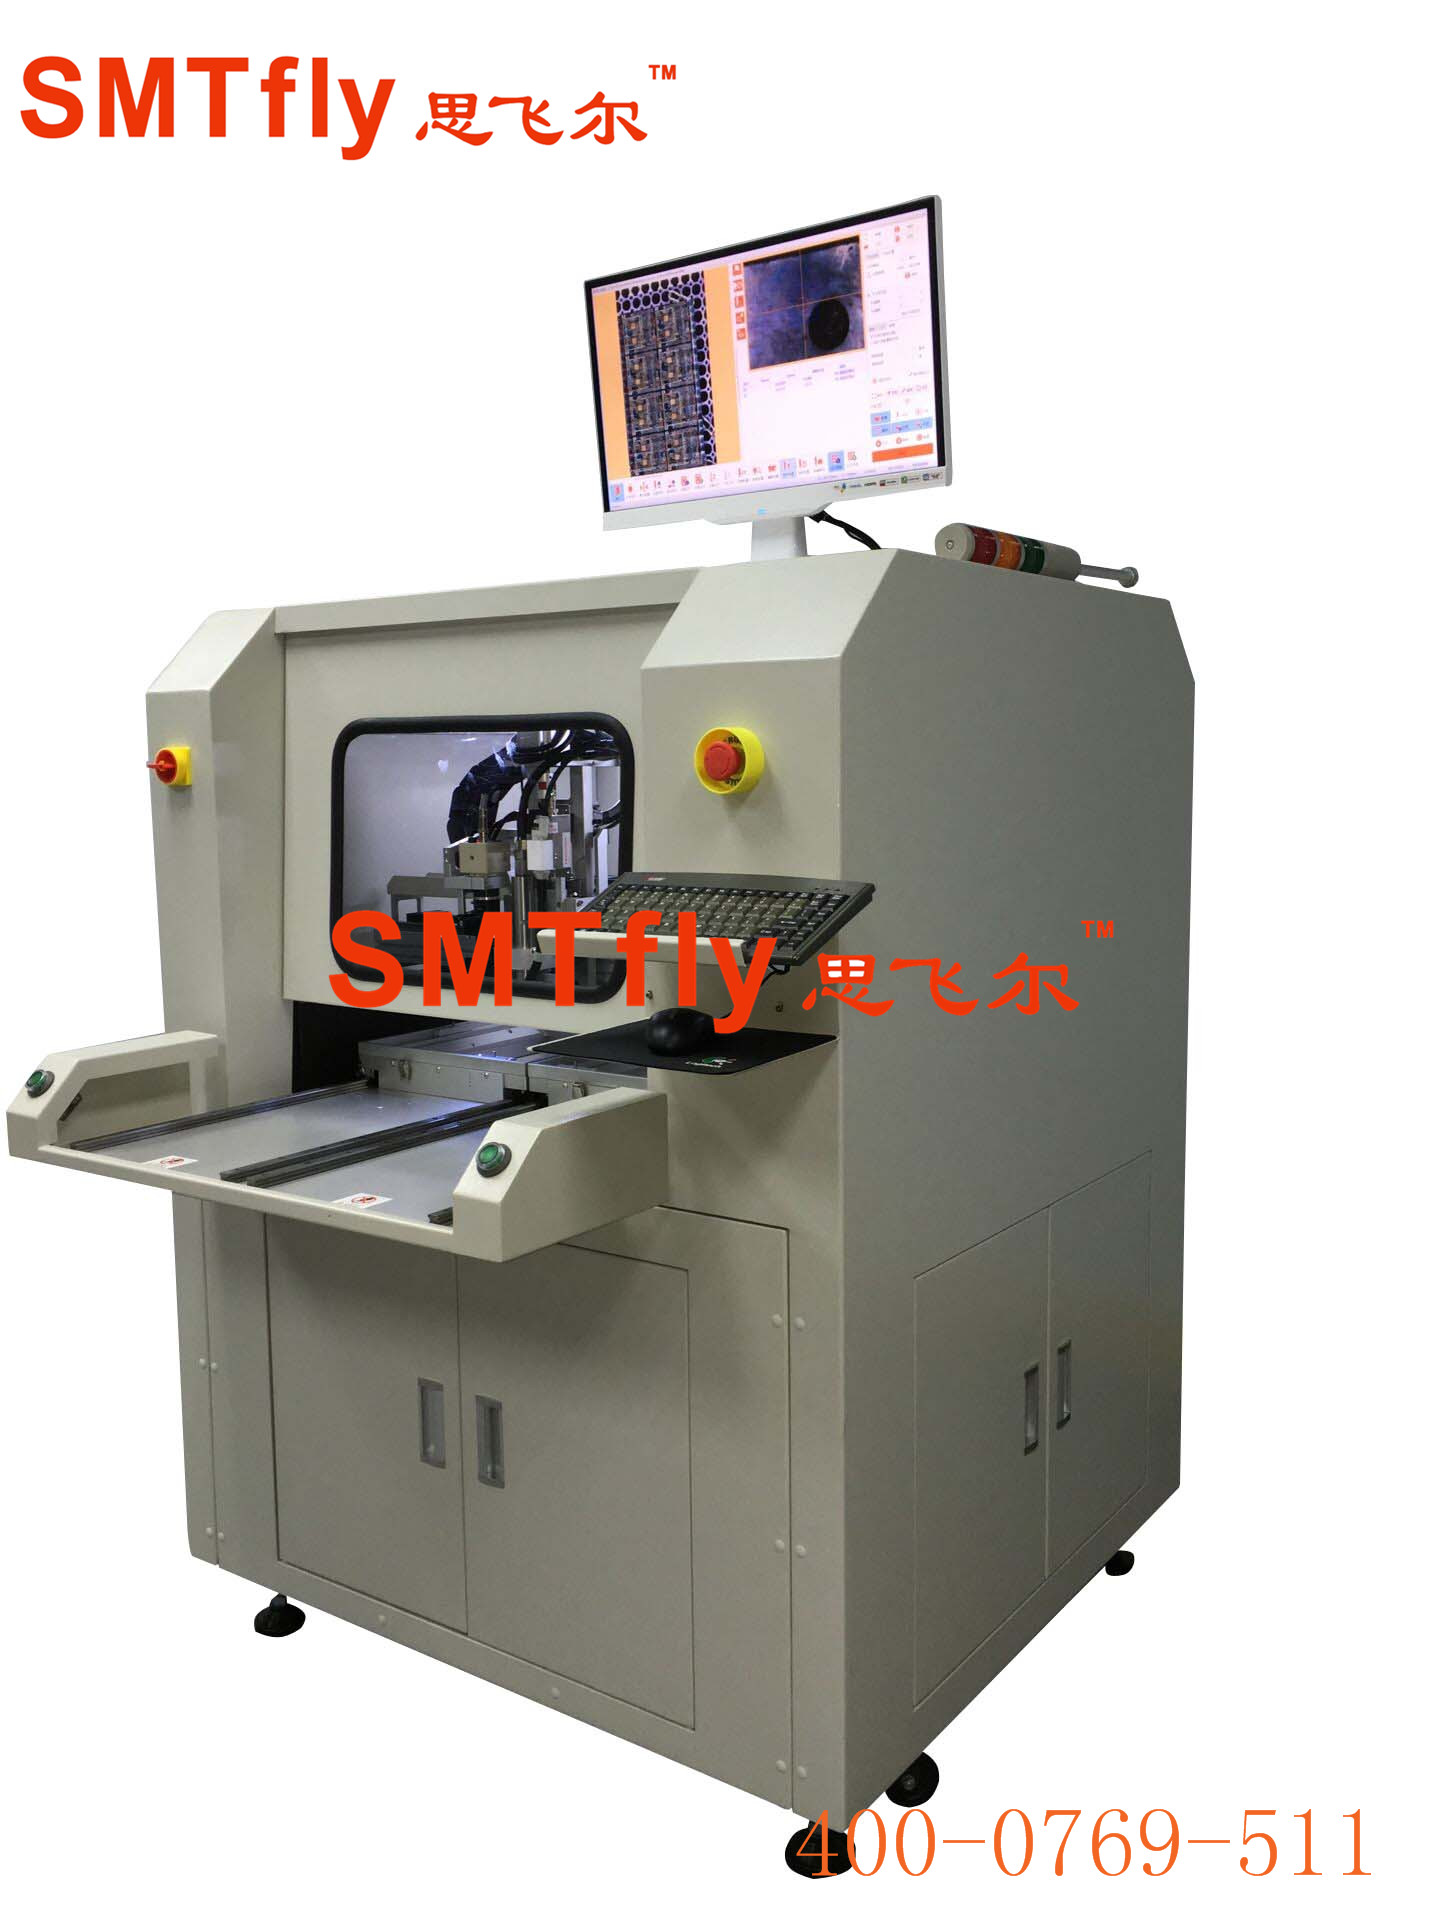 PCB Separator Router, SMTfly-F01-S